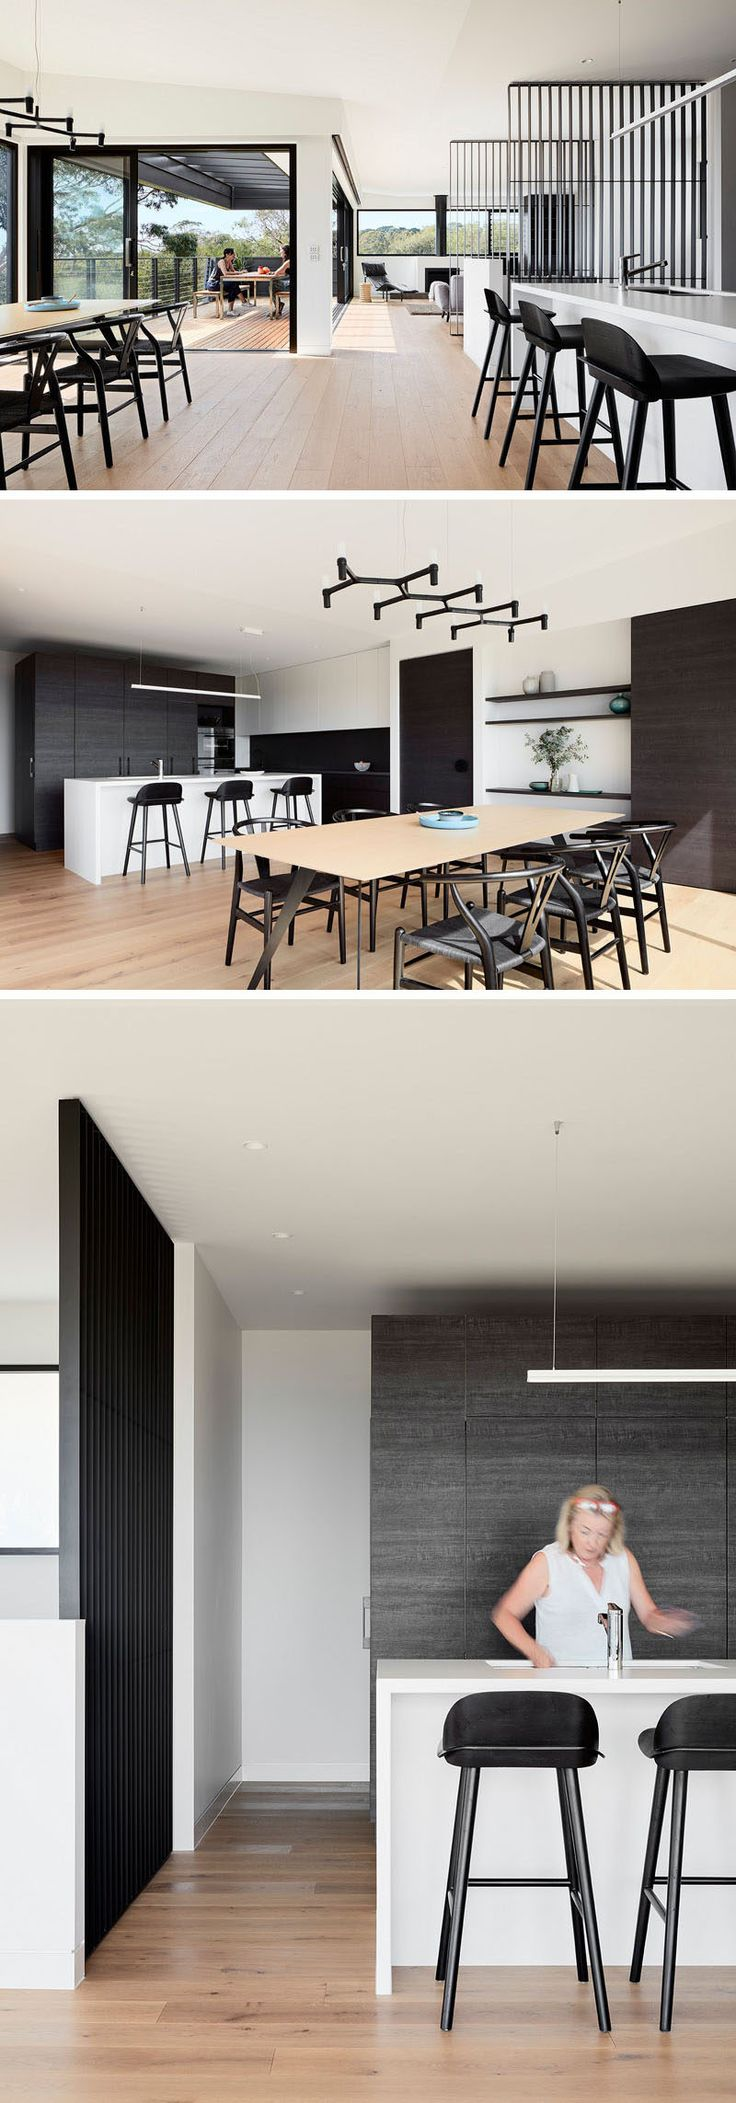 Beside the living area in this home is the indoor dining area and kitchen. In the dining room, the black chandelier matches the black chairs, while in the kitchen, a bright white kitchen island is a strong contrast against the dark wood cabinetry.